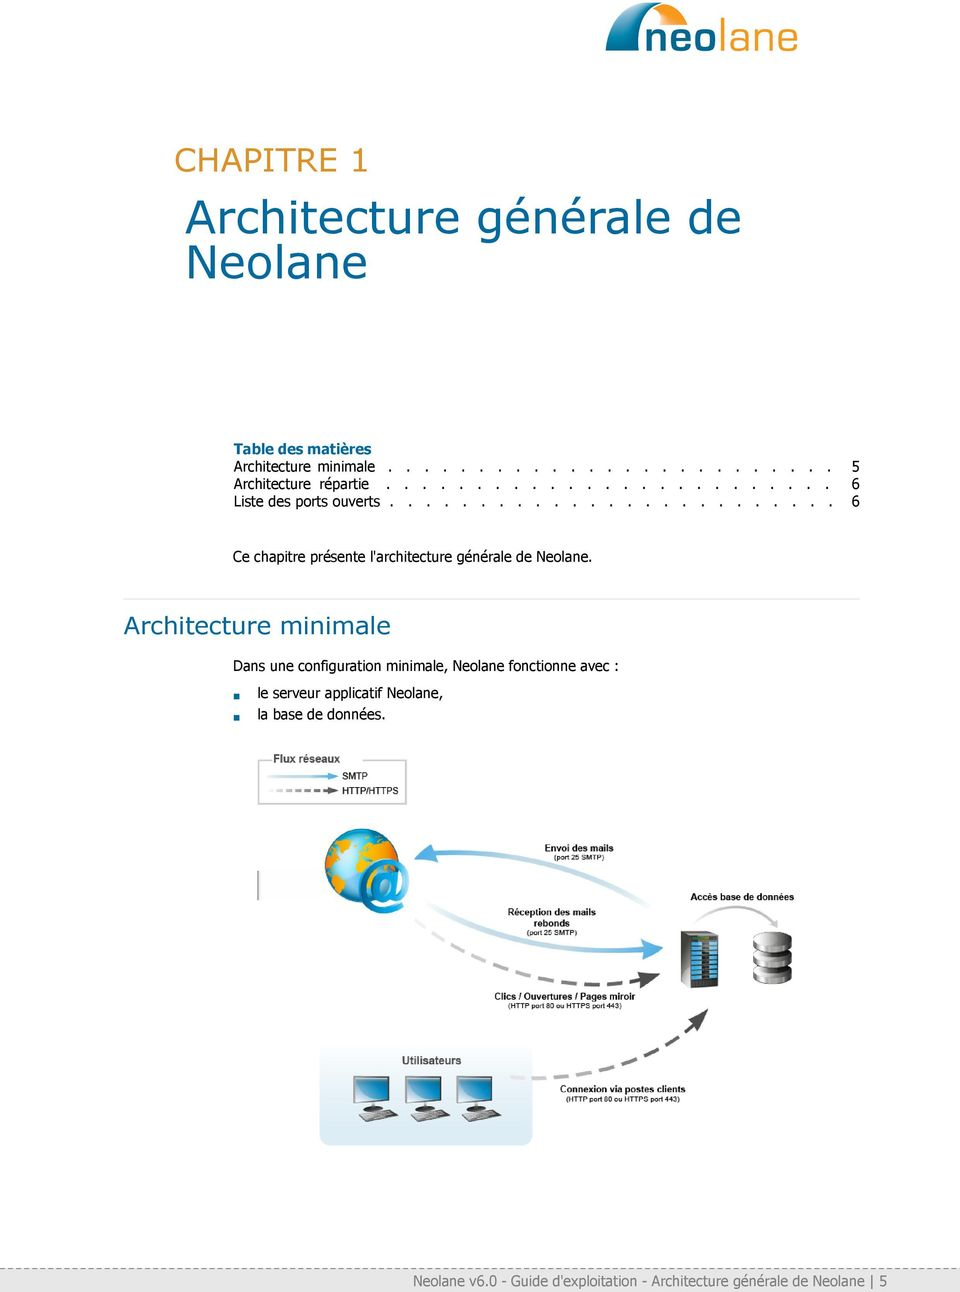 Architecture miimale Das ue cofiguratio miimale, Neolae foctioe avec : le serveur applicatif Neolae, la base de